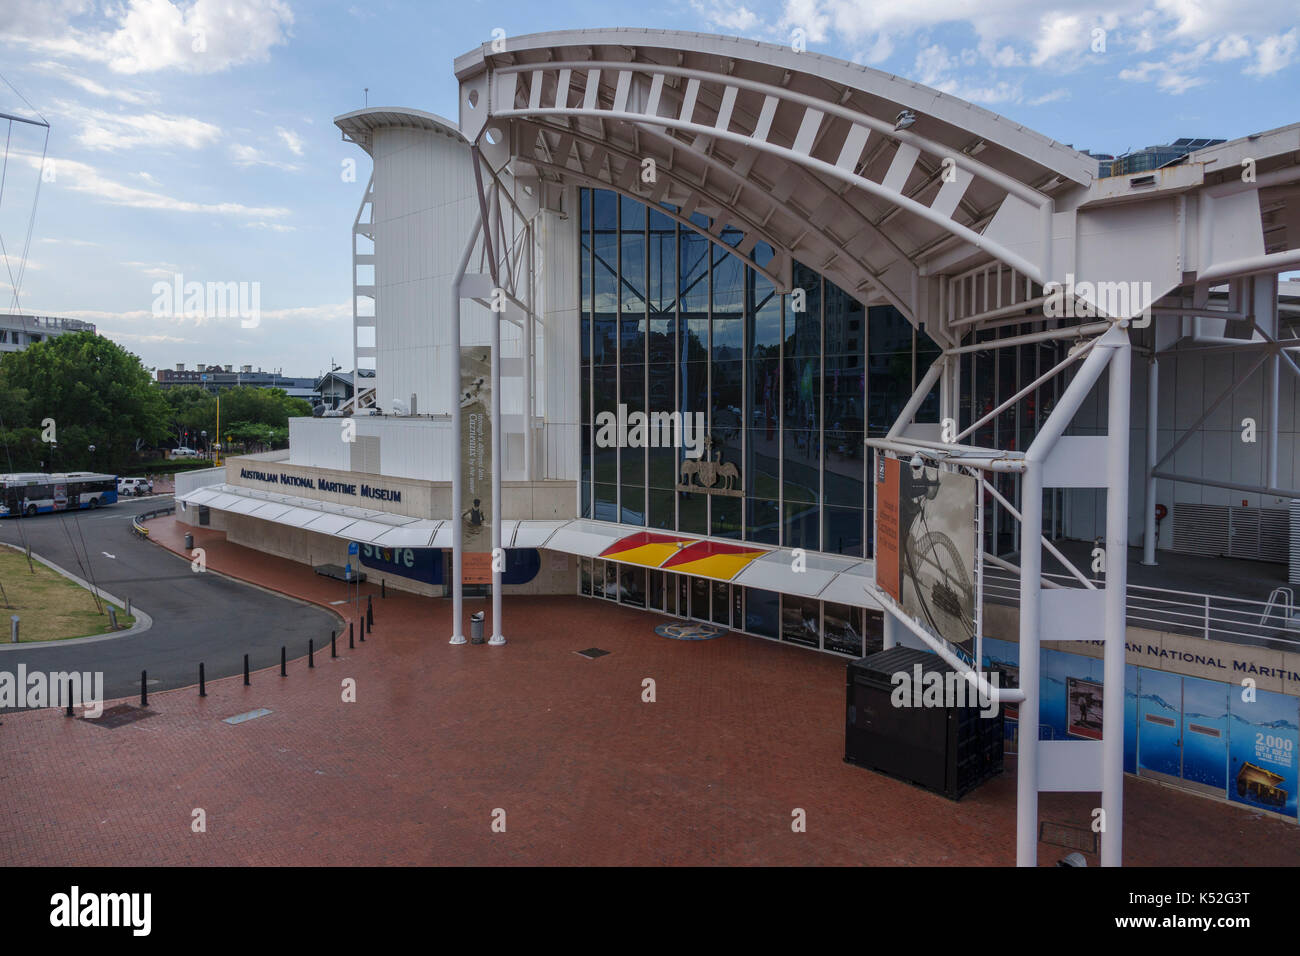 Front Entrance To The Australian National Maritime Museum At Darling Harbour Sydney Australia - Stock Image